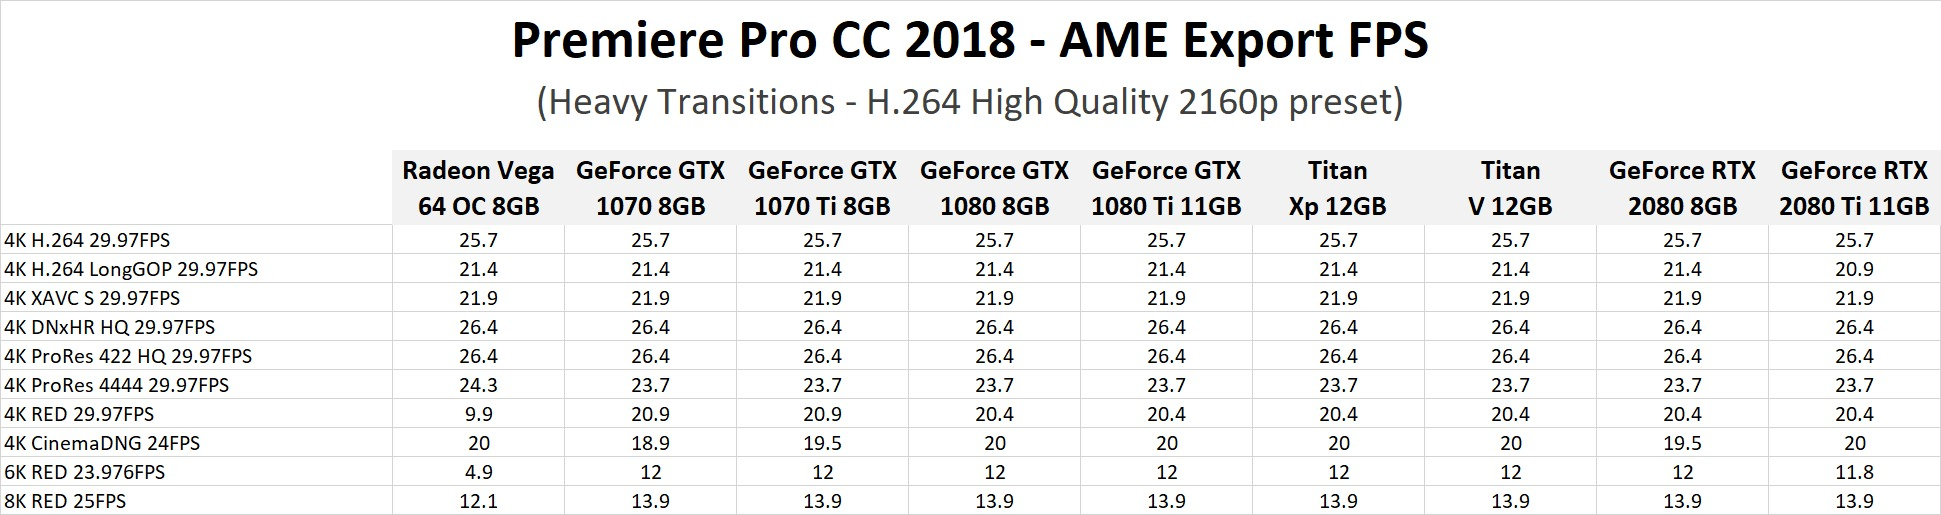 Premiere Pro CC 2018: NVIDIA GeForce RTX 2080 & 2080 Ti Performance